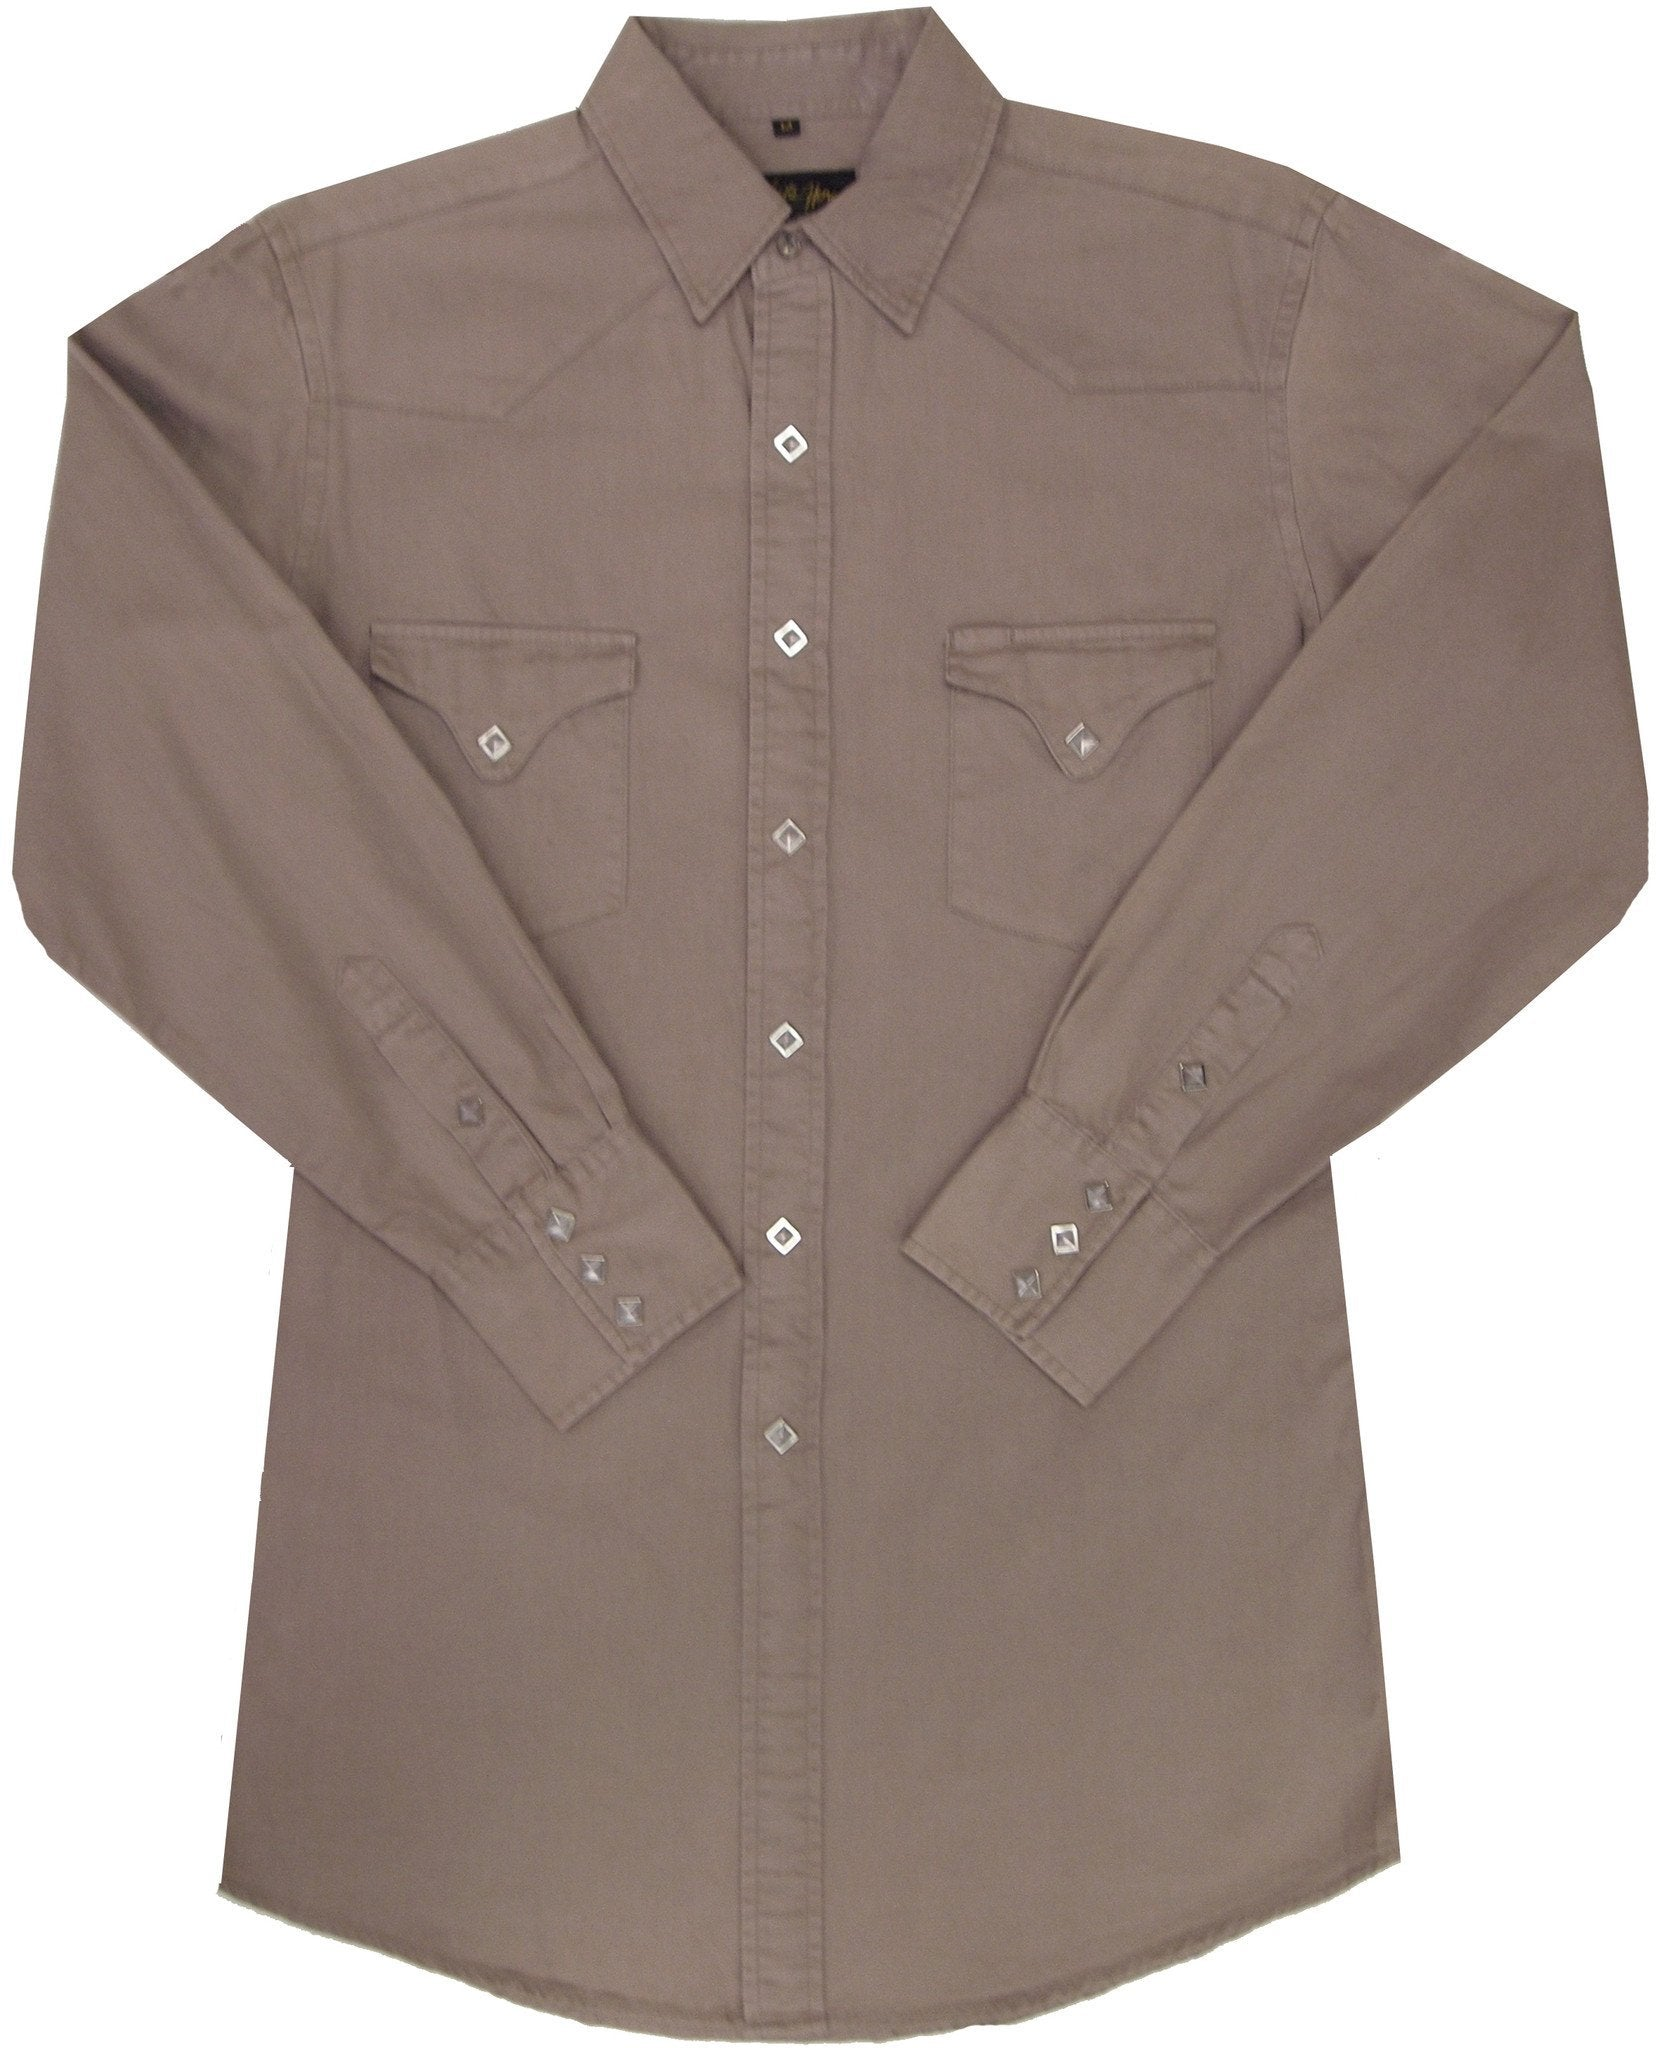 White Horse Mens Canvas Western Shirt - Big Sizes